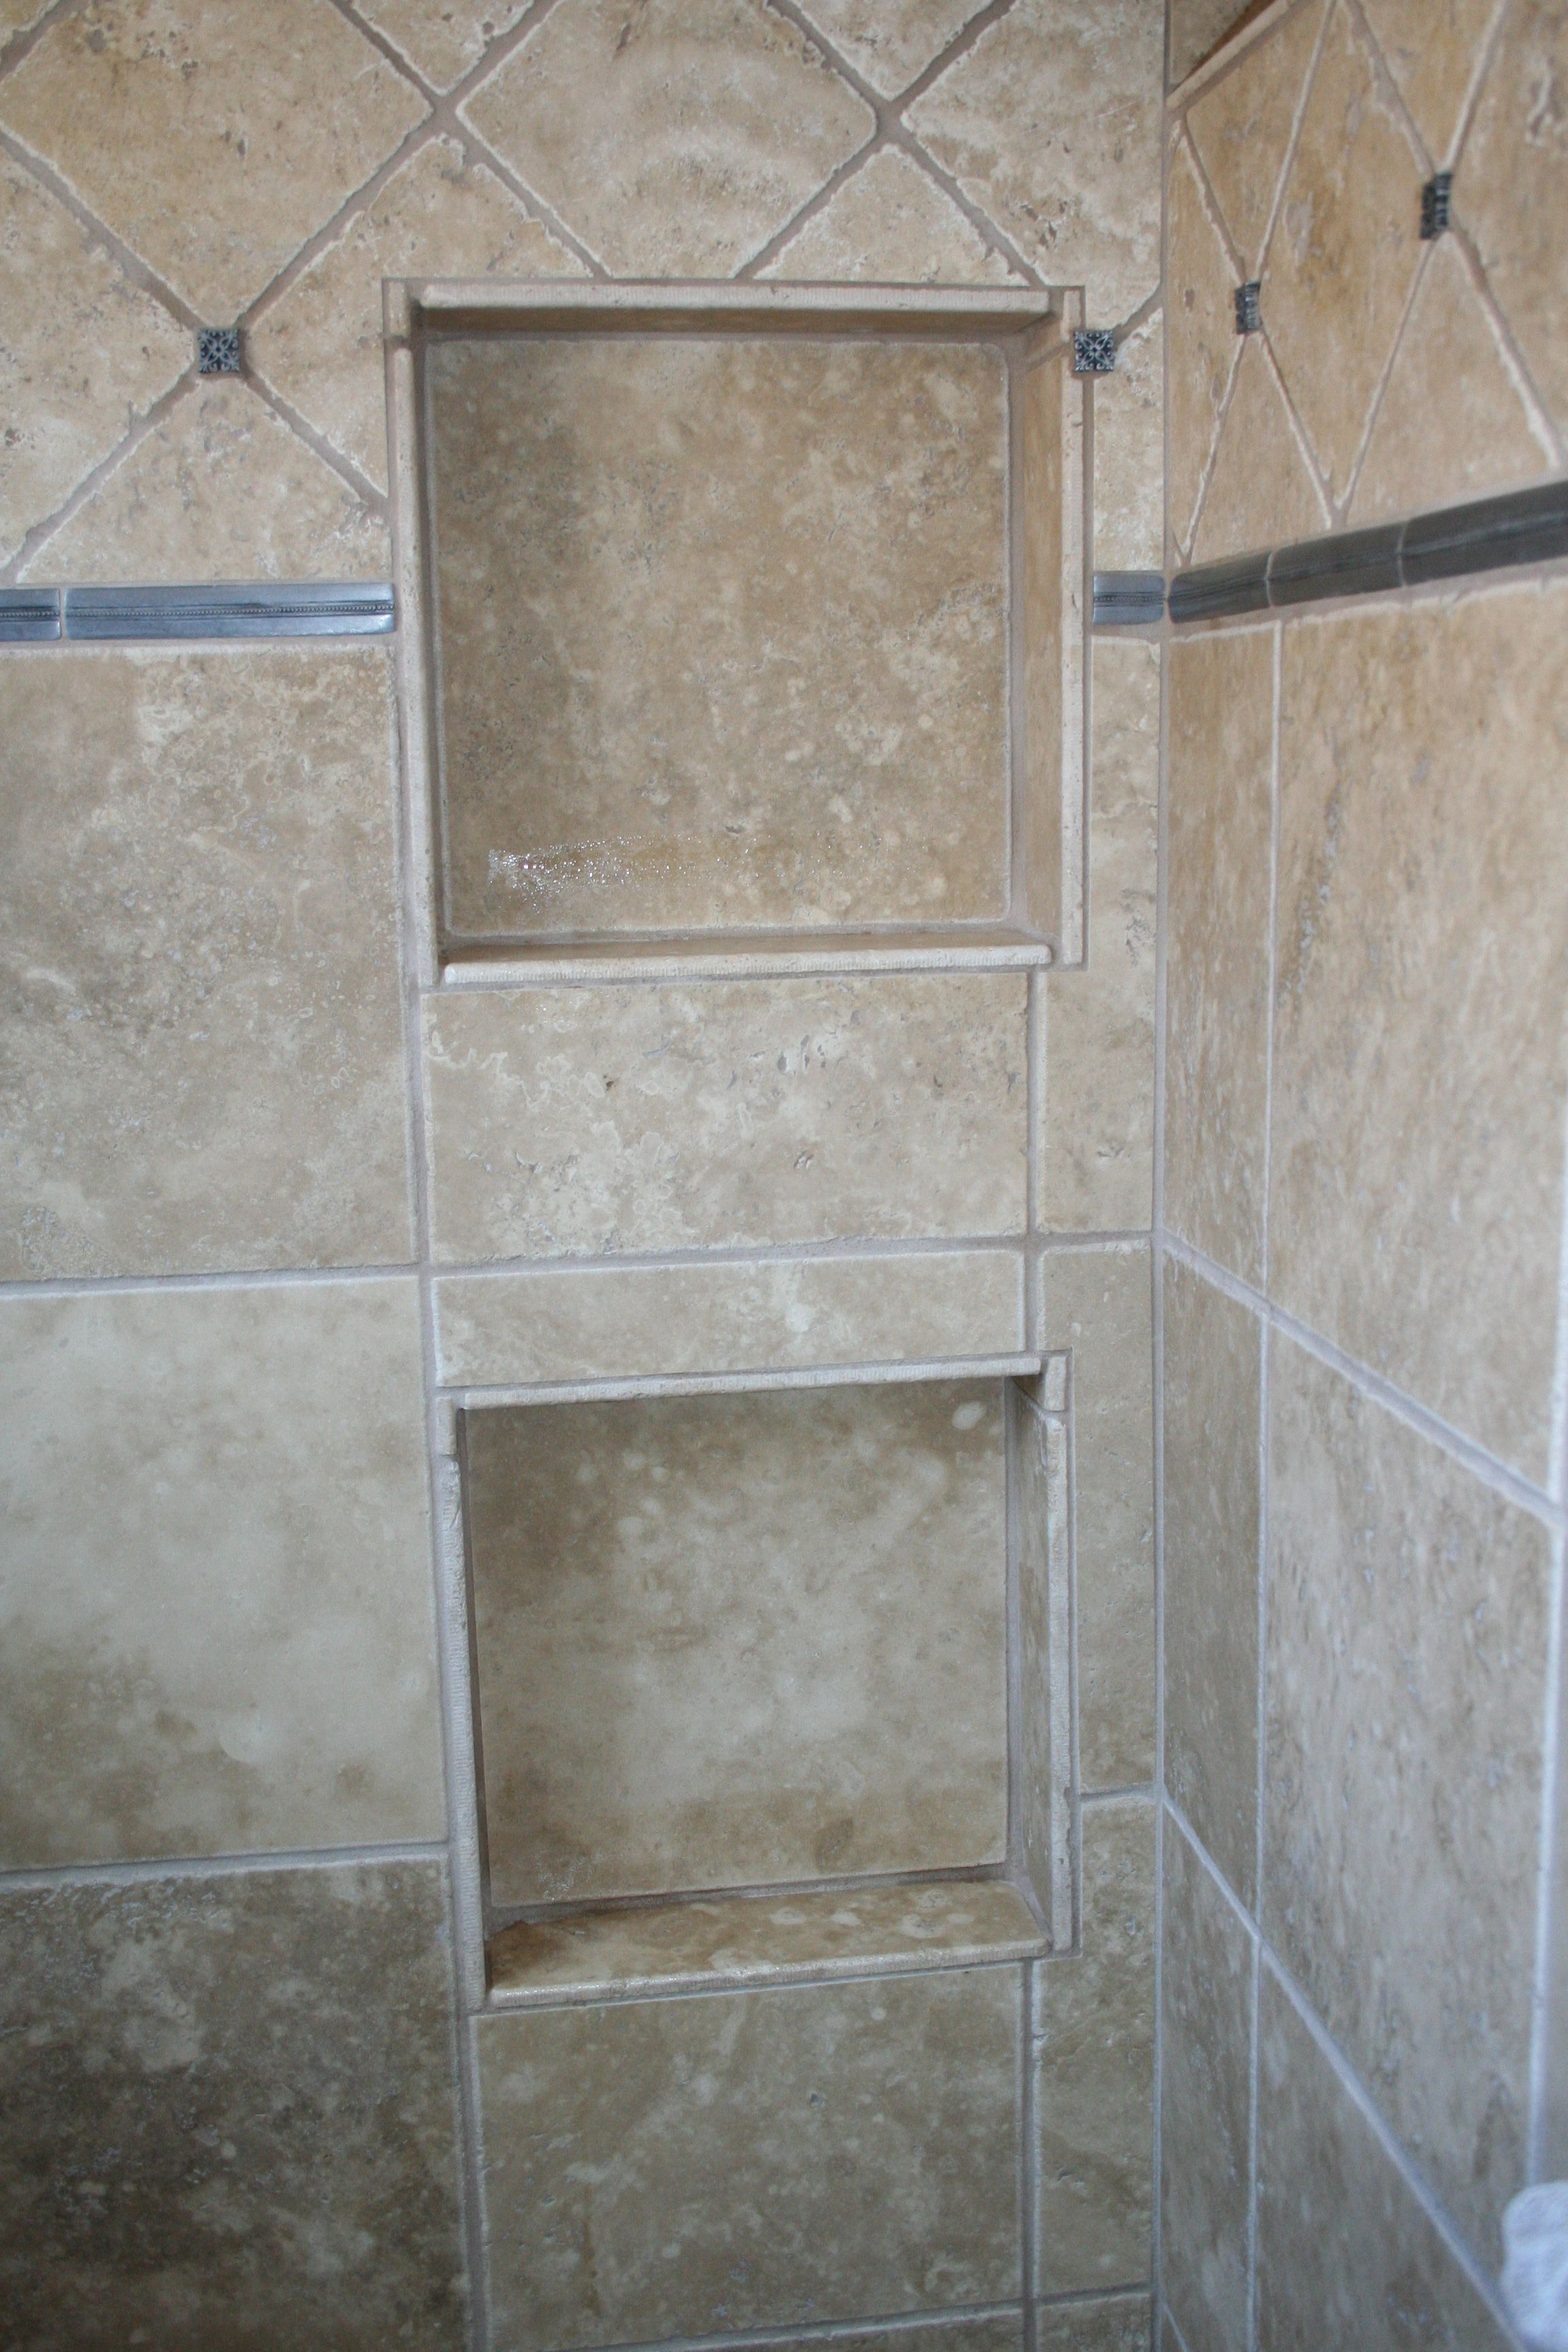 duk liner, shower shelf, niche, shampoo, shower box | STYLED WITH ...